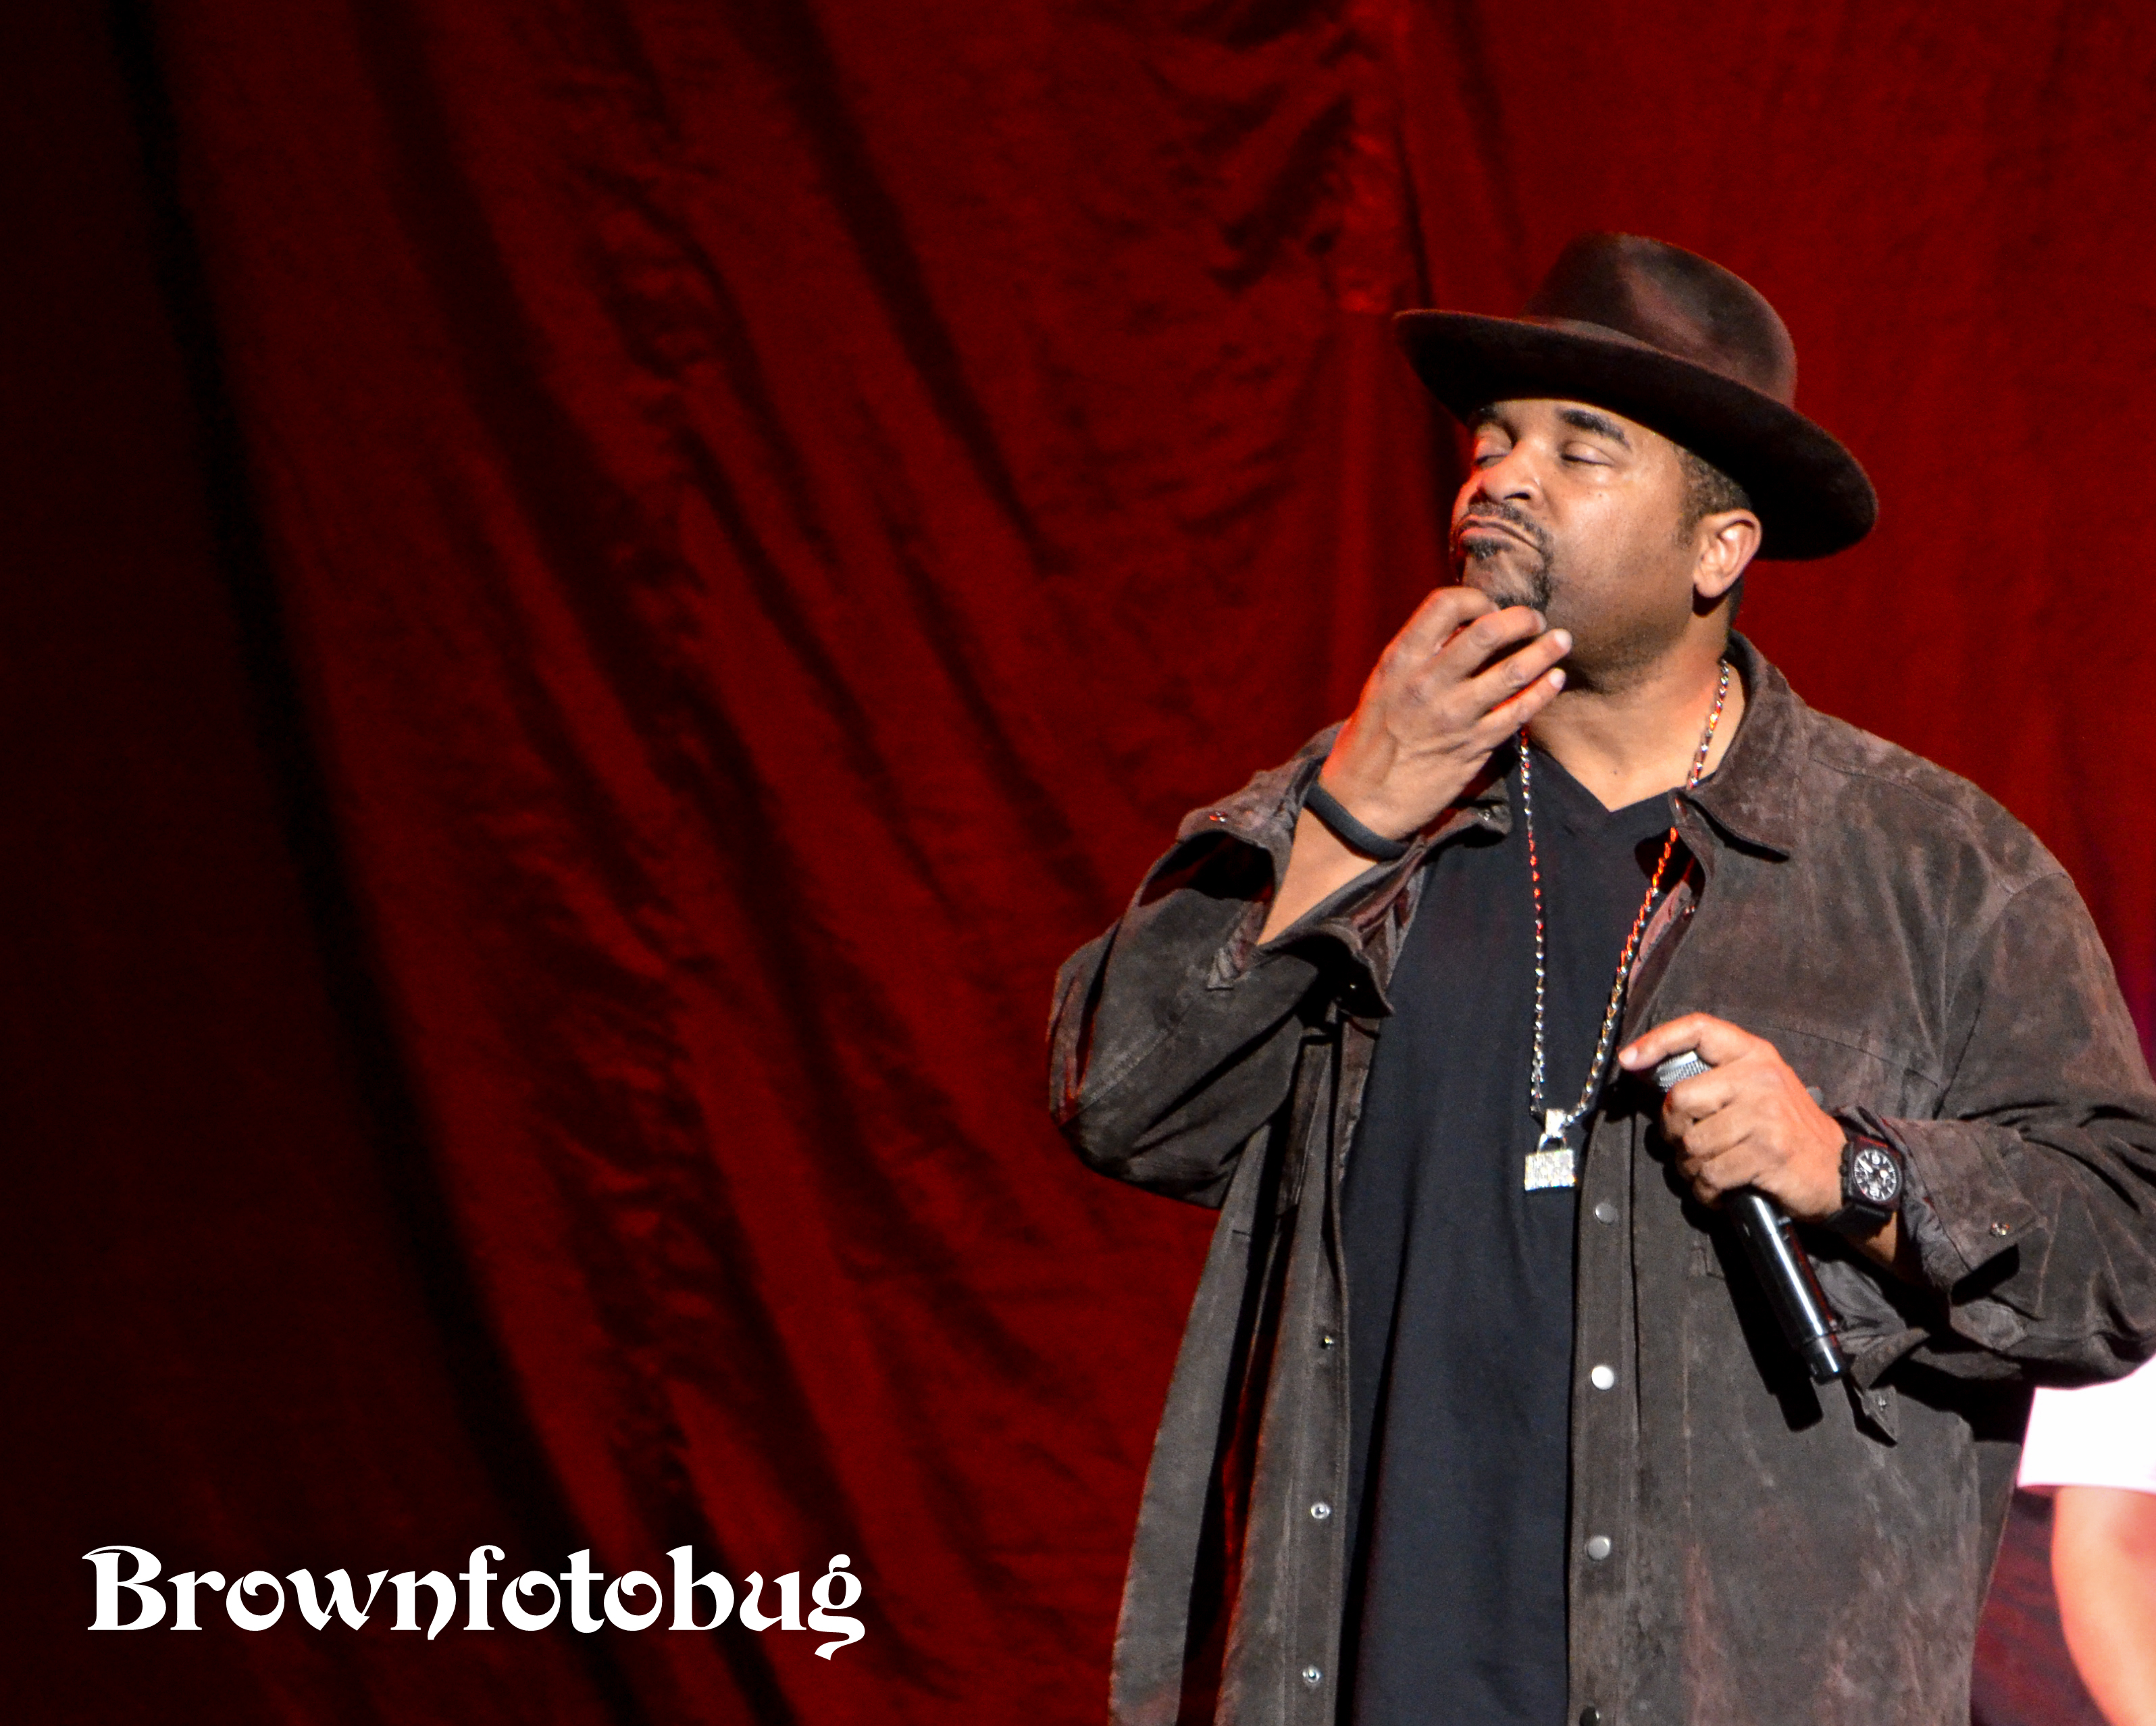 Sir Mix-A-Lot at Key Arena – 12/11/13 (Photo By Arlene Brown)